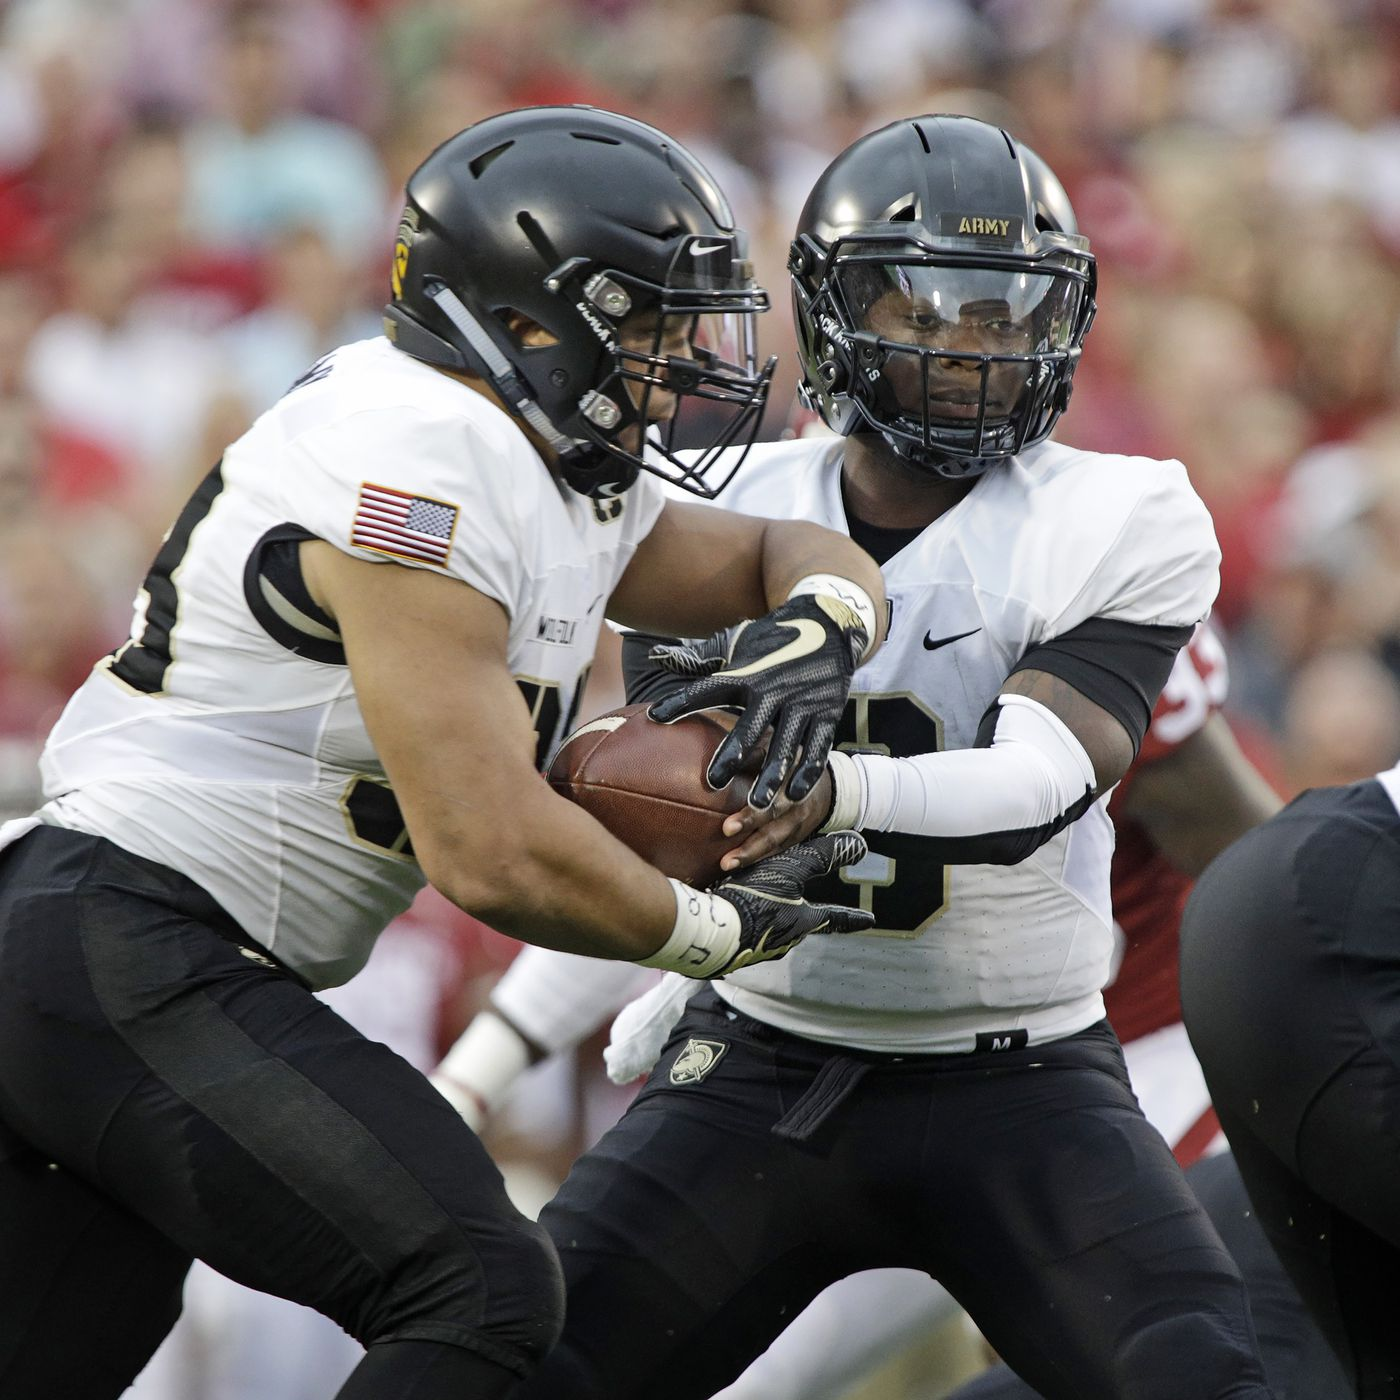 Army navy football betting line buy bitcoins with paysafecard